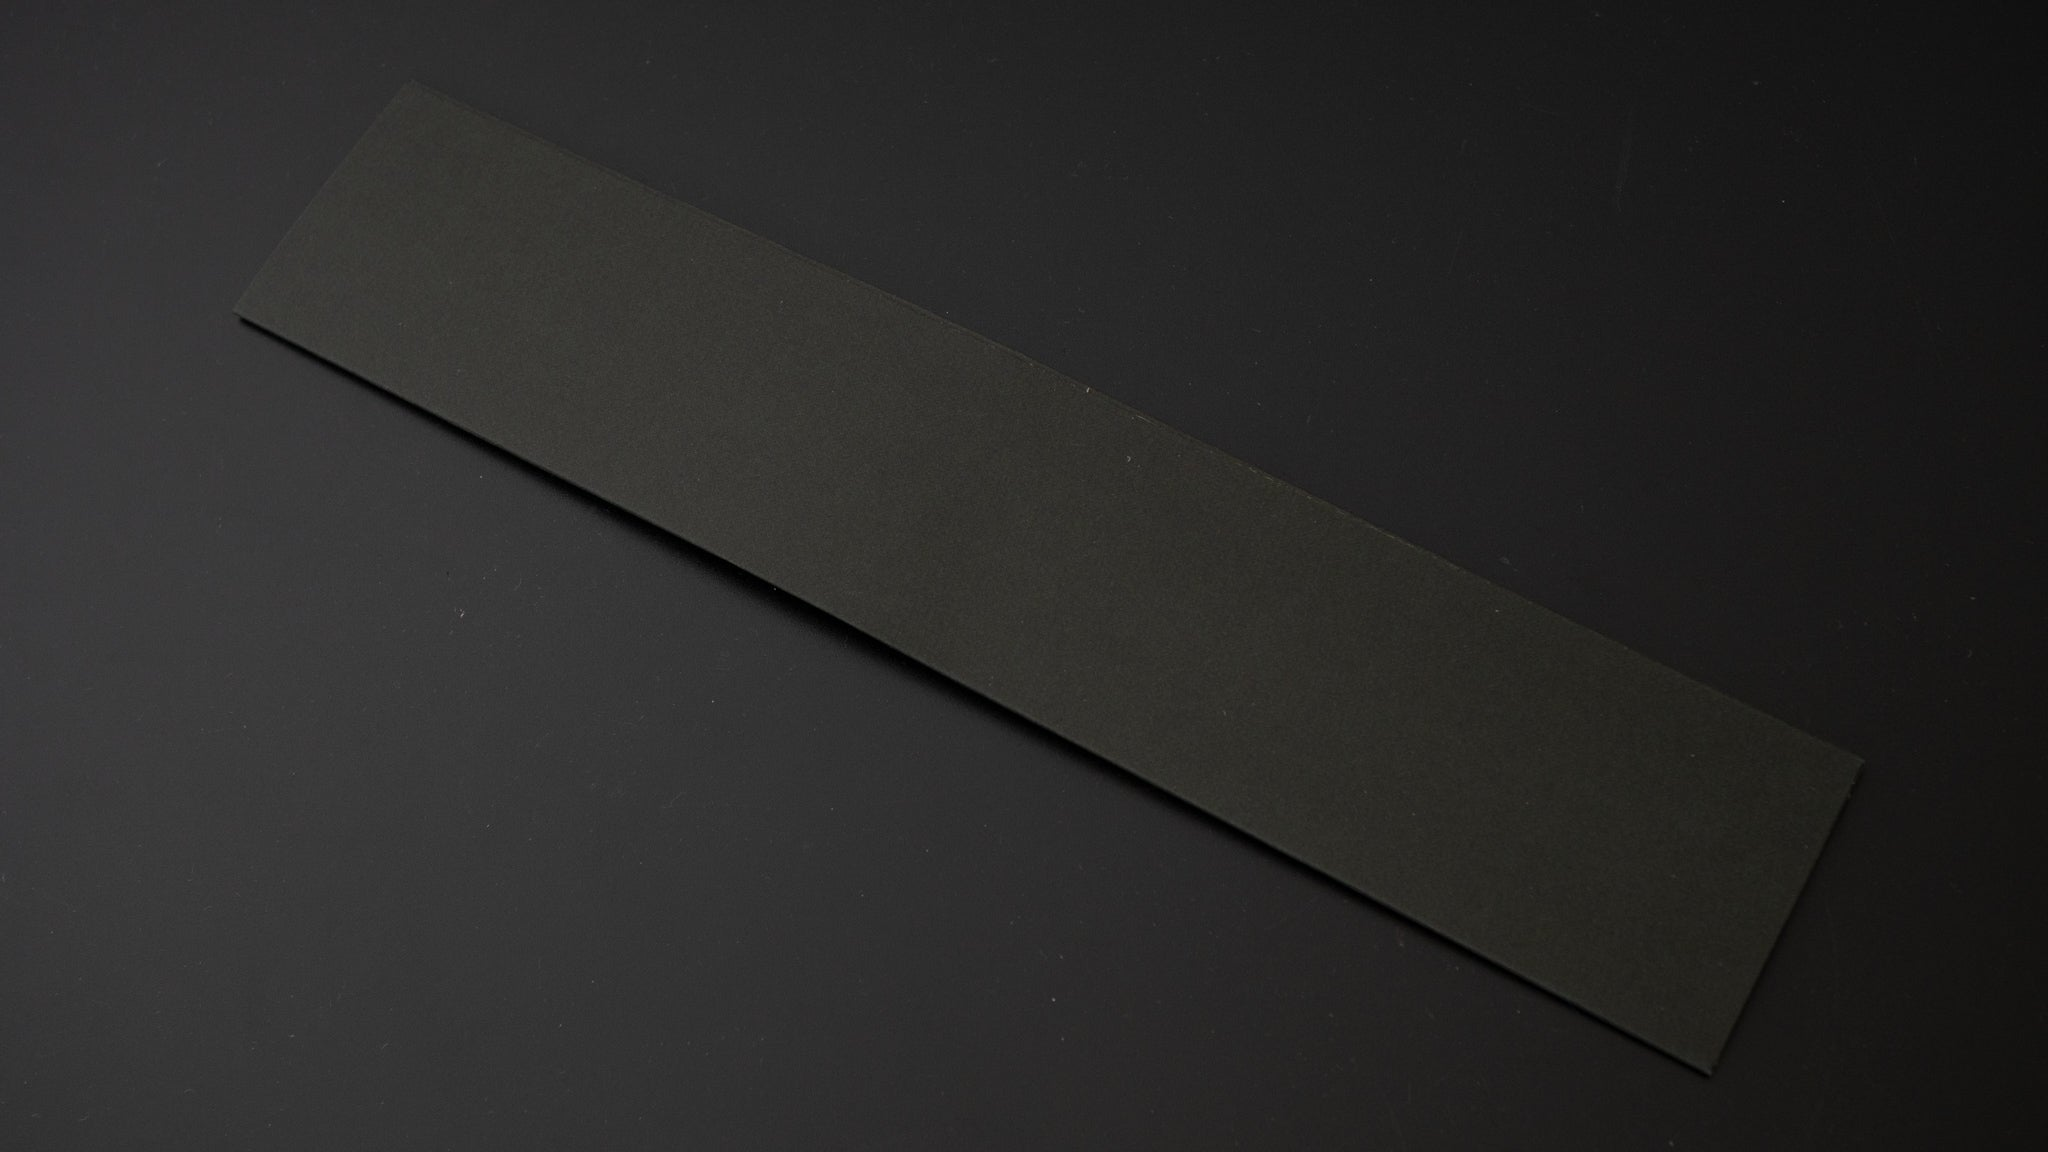 Hitohira Black Knife Sleeve (62 x 310mm) | HITOHIRA